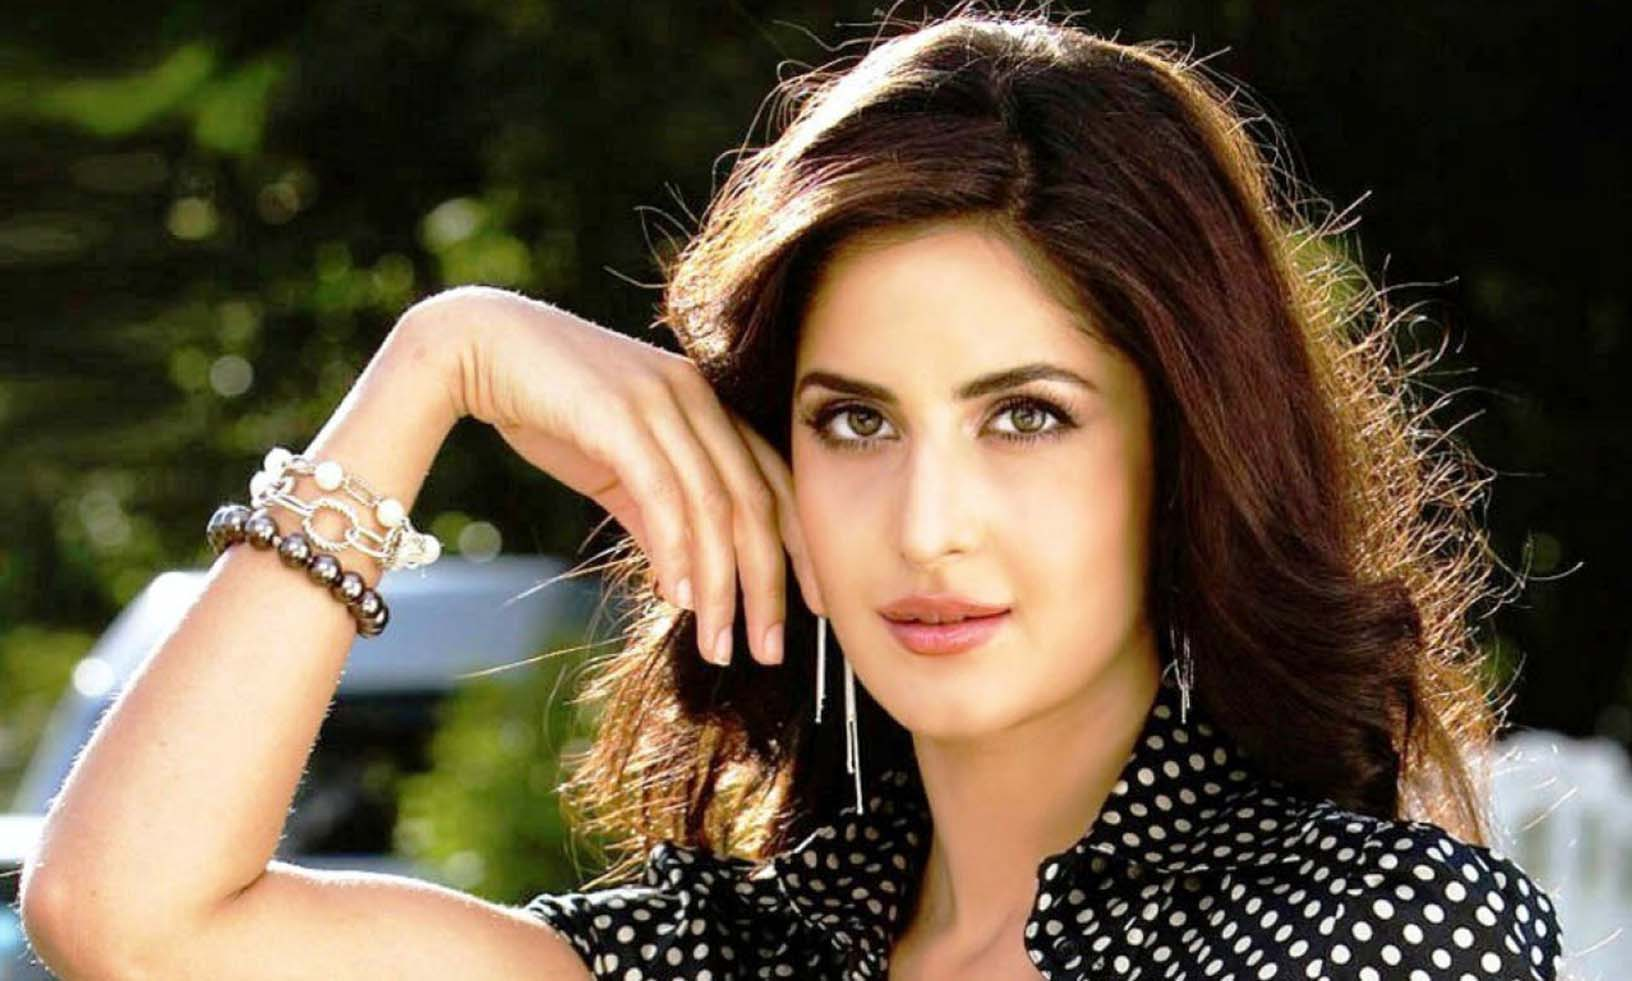 katrina kaif hd wallpapers 1080p 2017 - wallpaper cave